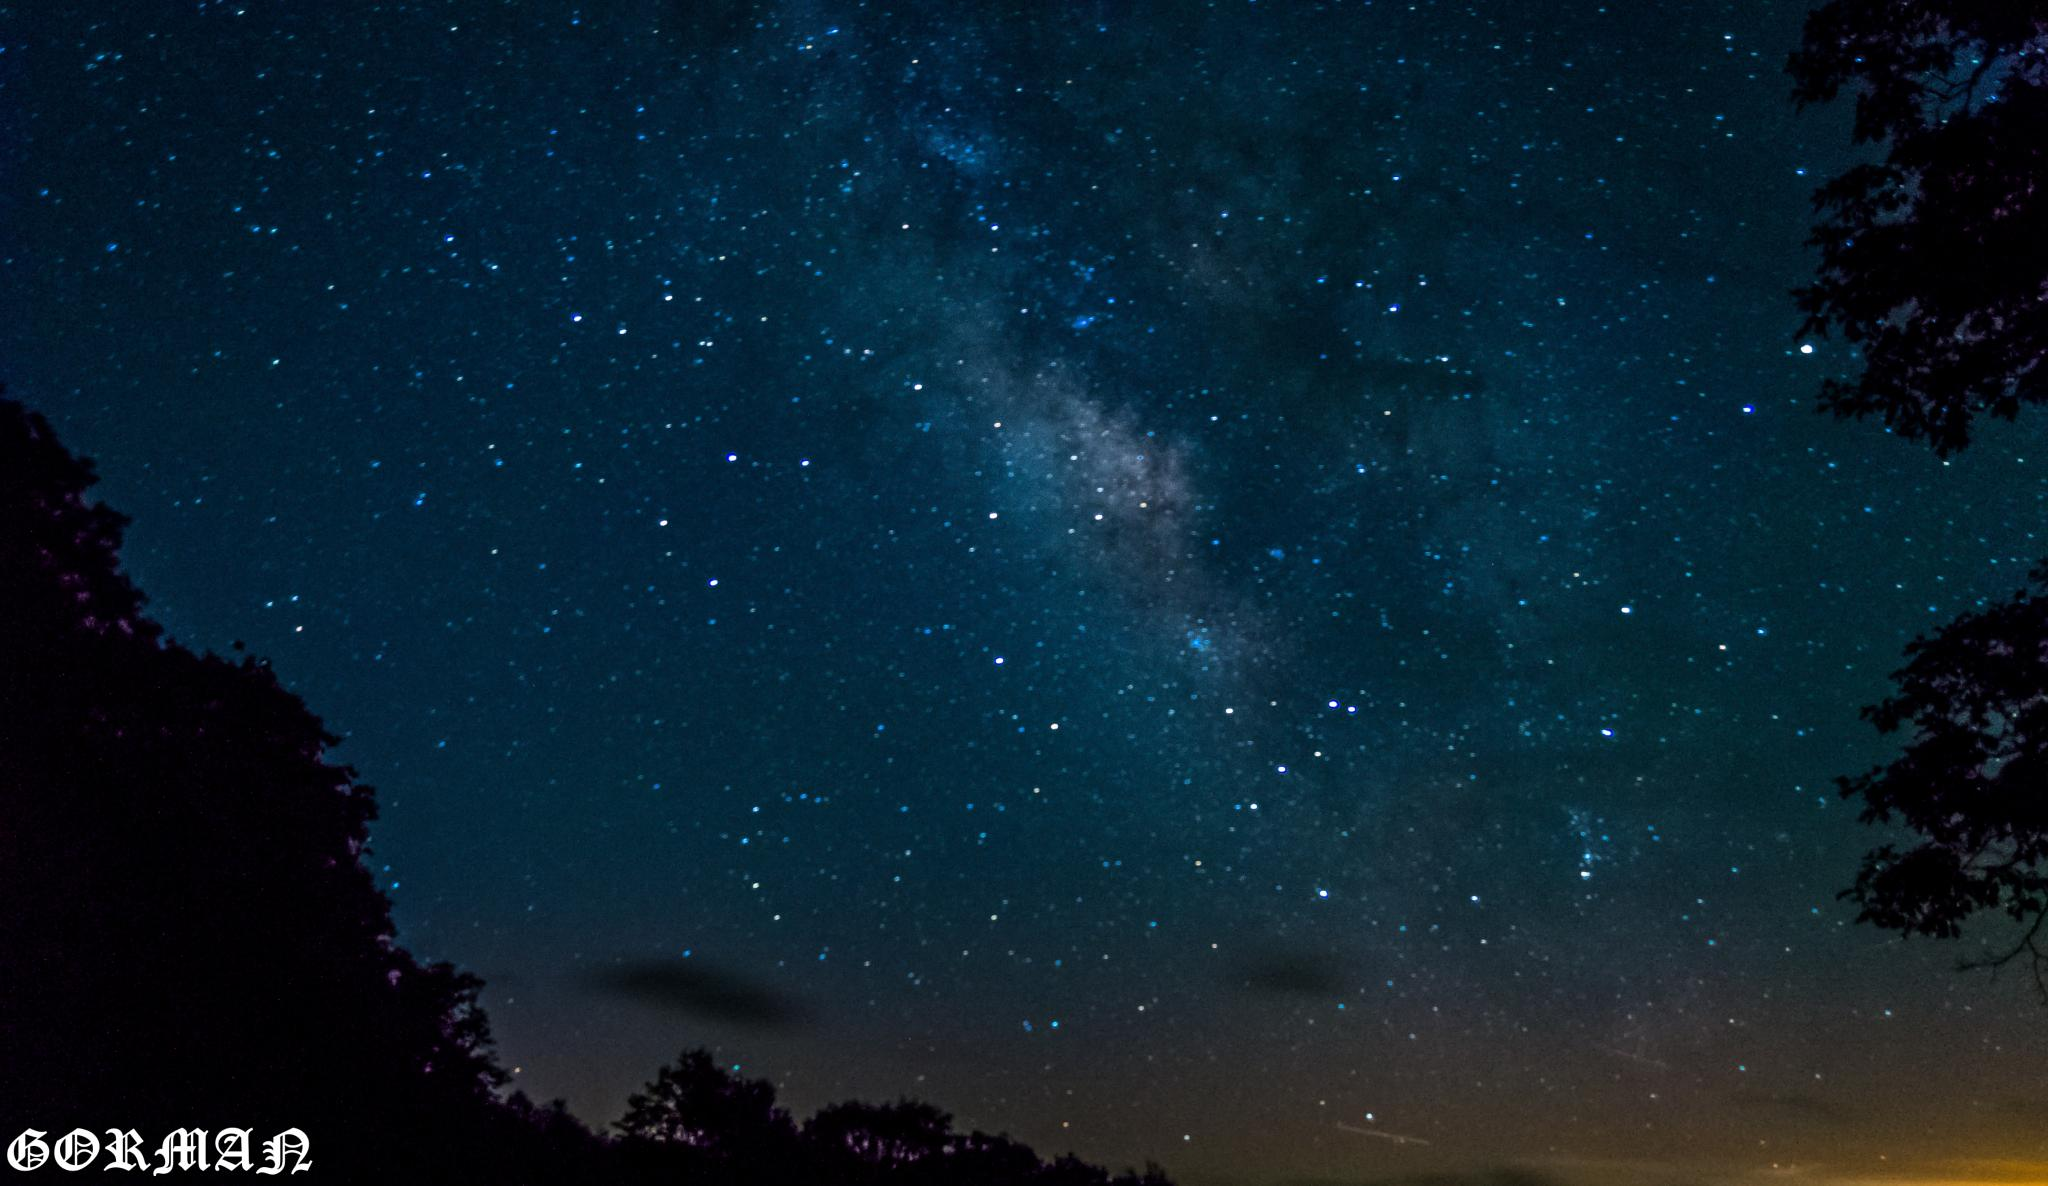 First try at the milky way by James Gorman